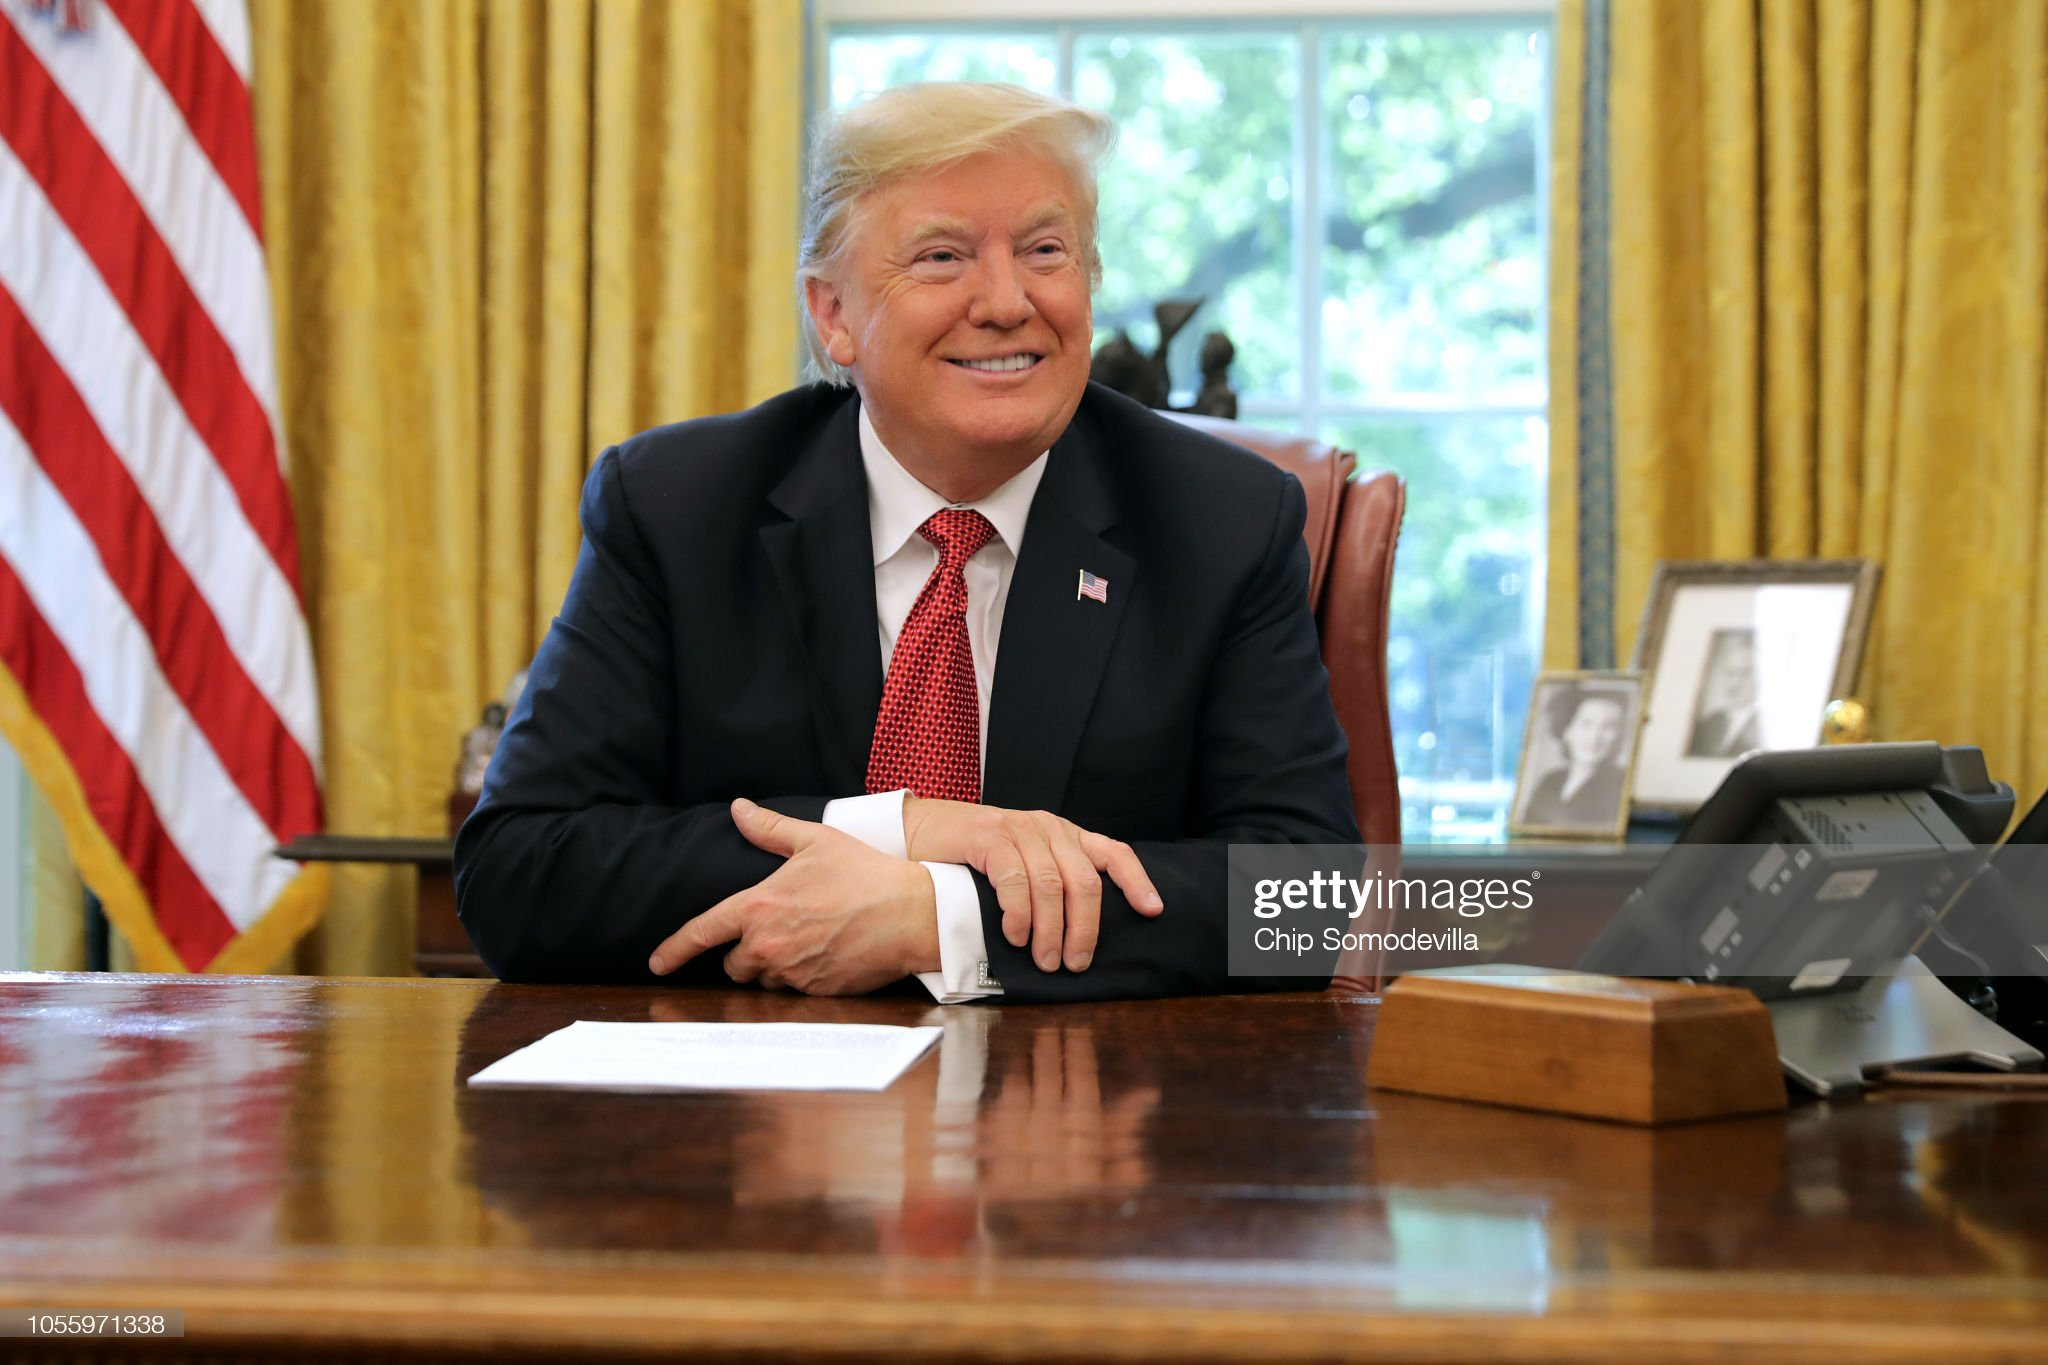 President Trump Meets With Workers In White House On Economic Plan : News Photo